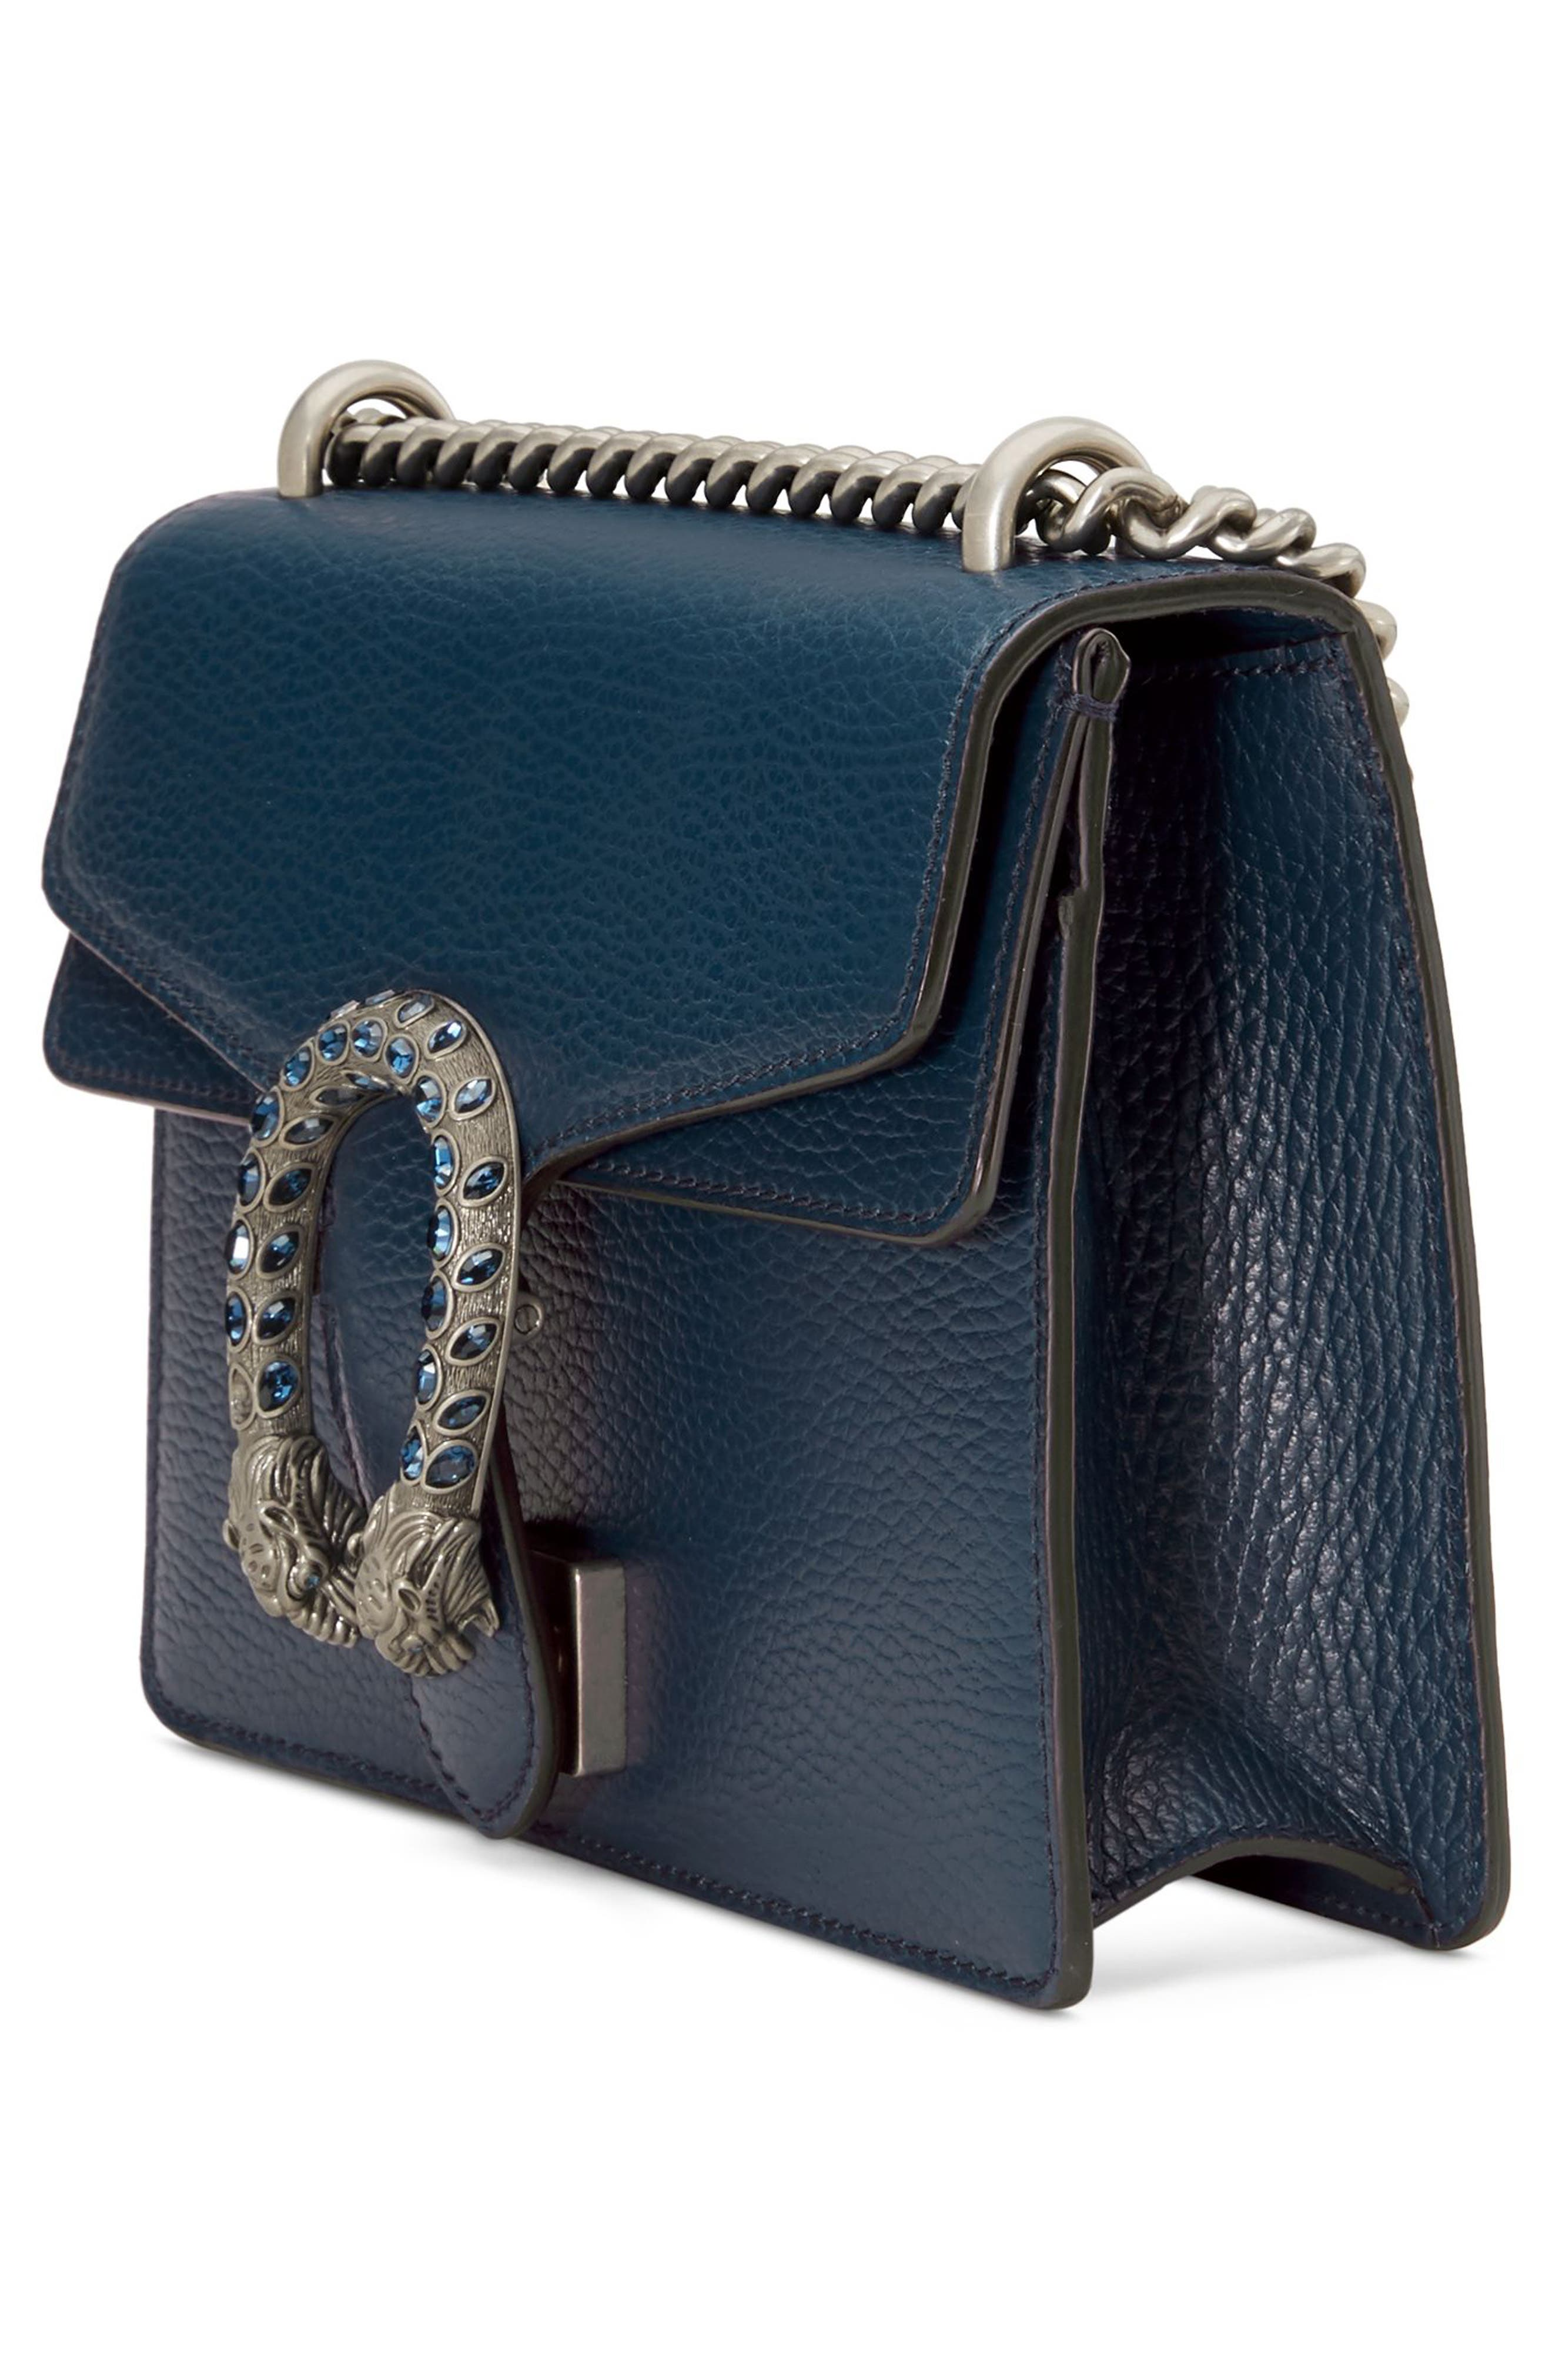 Mini Dionysus Leather Shoulder Bag,                             Alternate thumbnail 4, color,                             BLU AGATA/ MONTANA